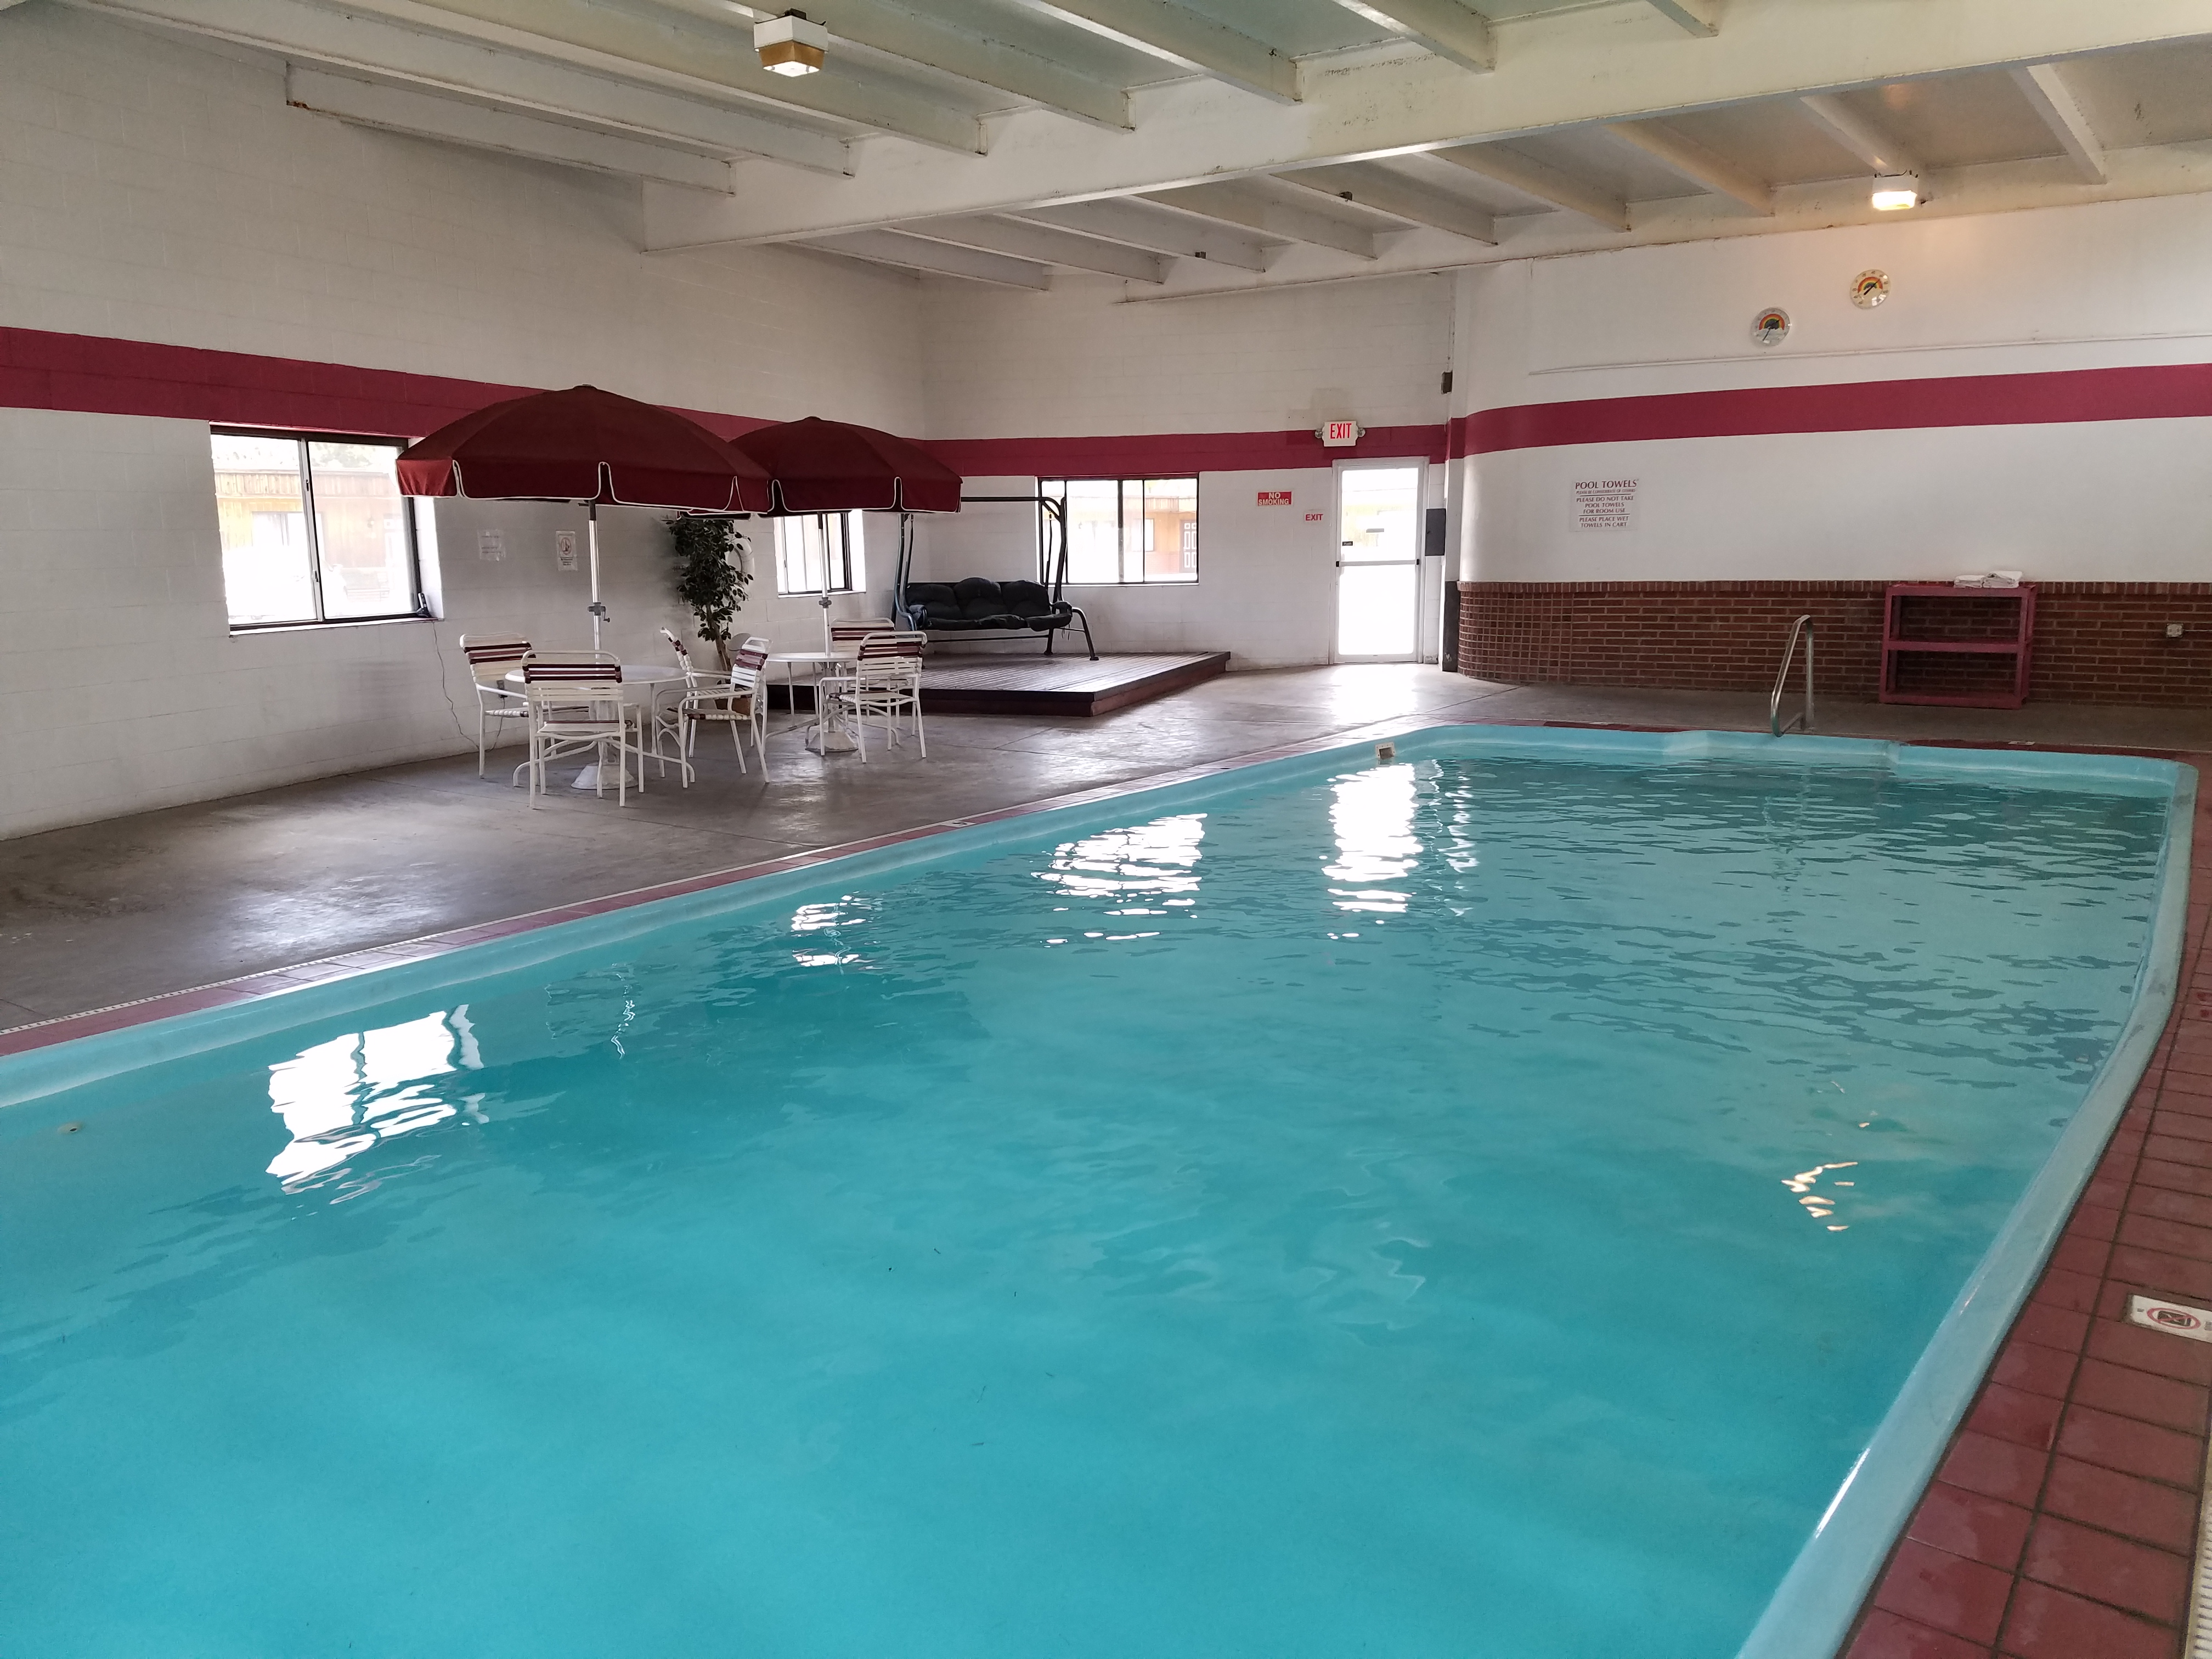 Indoor Heated Pool Hotels Motels Amenities Newly Remodeled Free WiFi Free Continental Breakfast Great Western Colorado Lodge Salida CO Reasonable Affordable Rates Amenities Hotels Motels Lodging Accomodations Great Amenities Salida Colorado